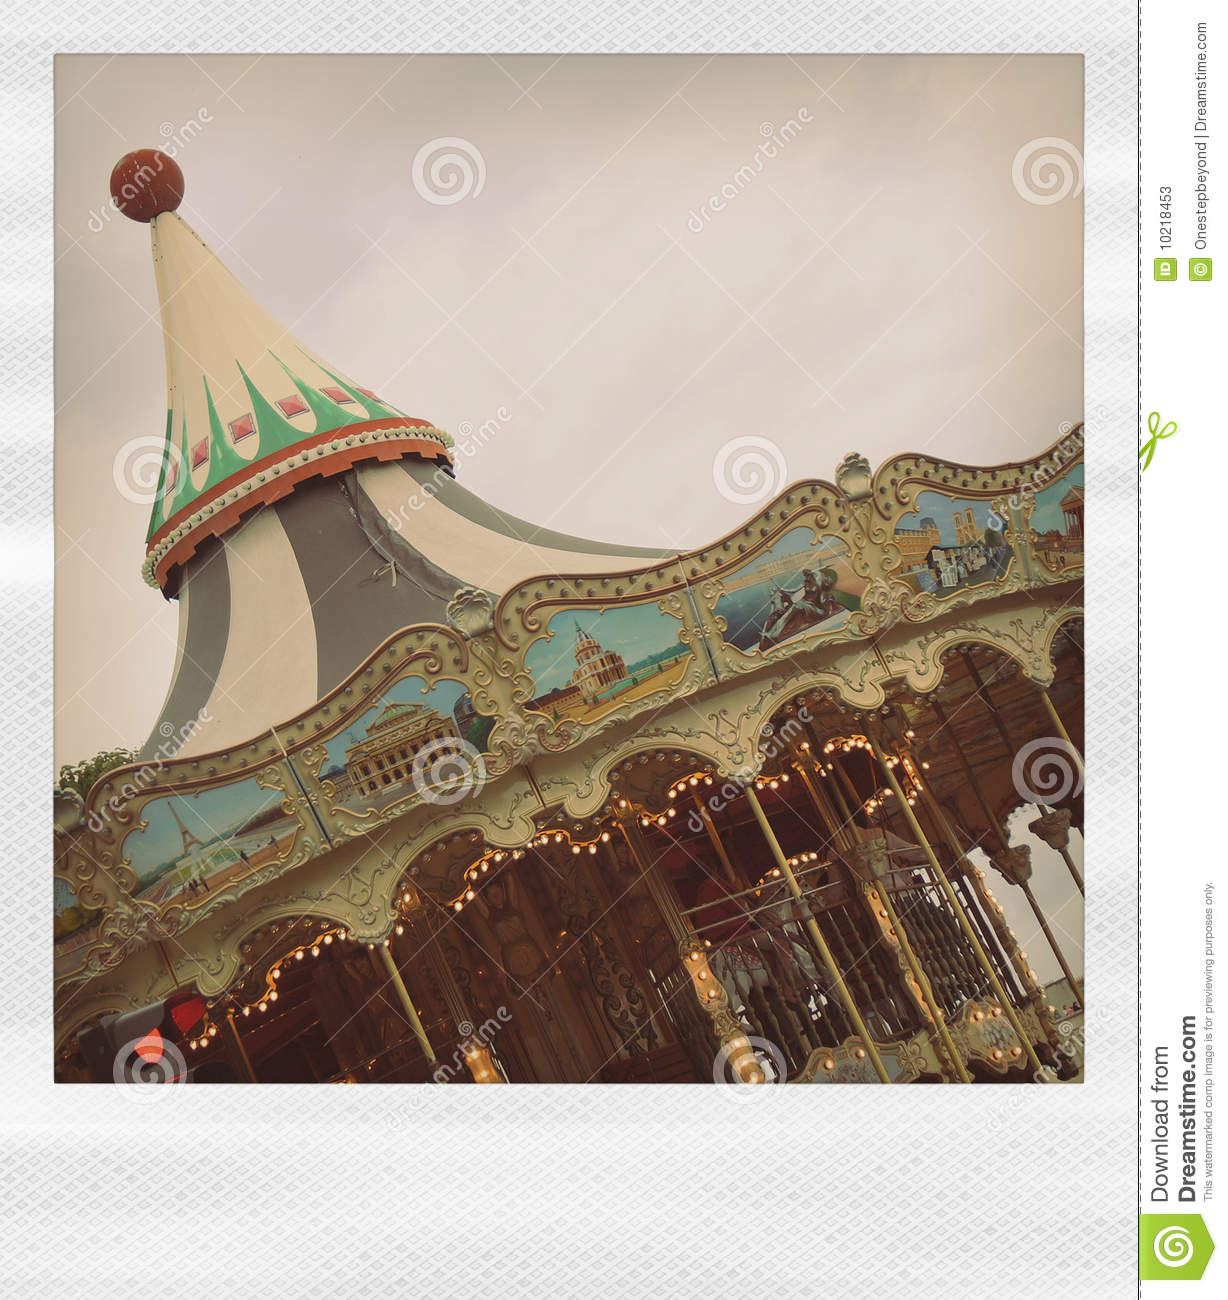 Polaroid- carrousel